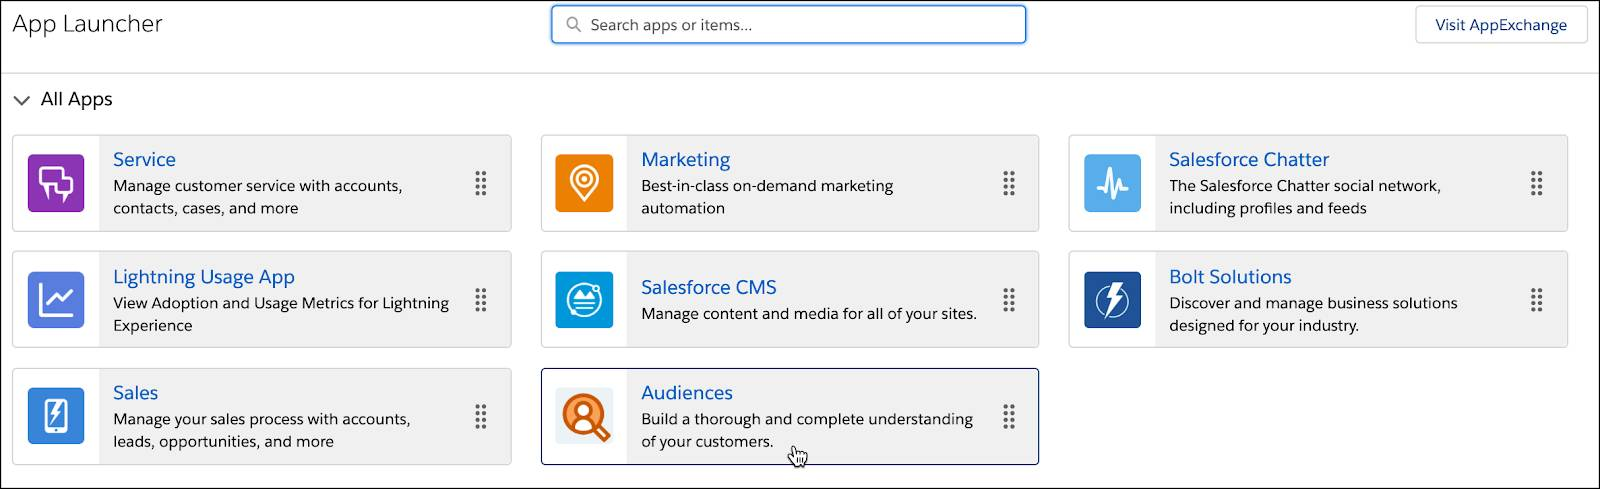 App Launcher with the Audiences app selected.